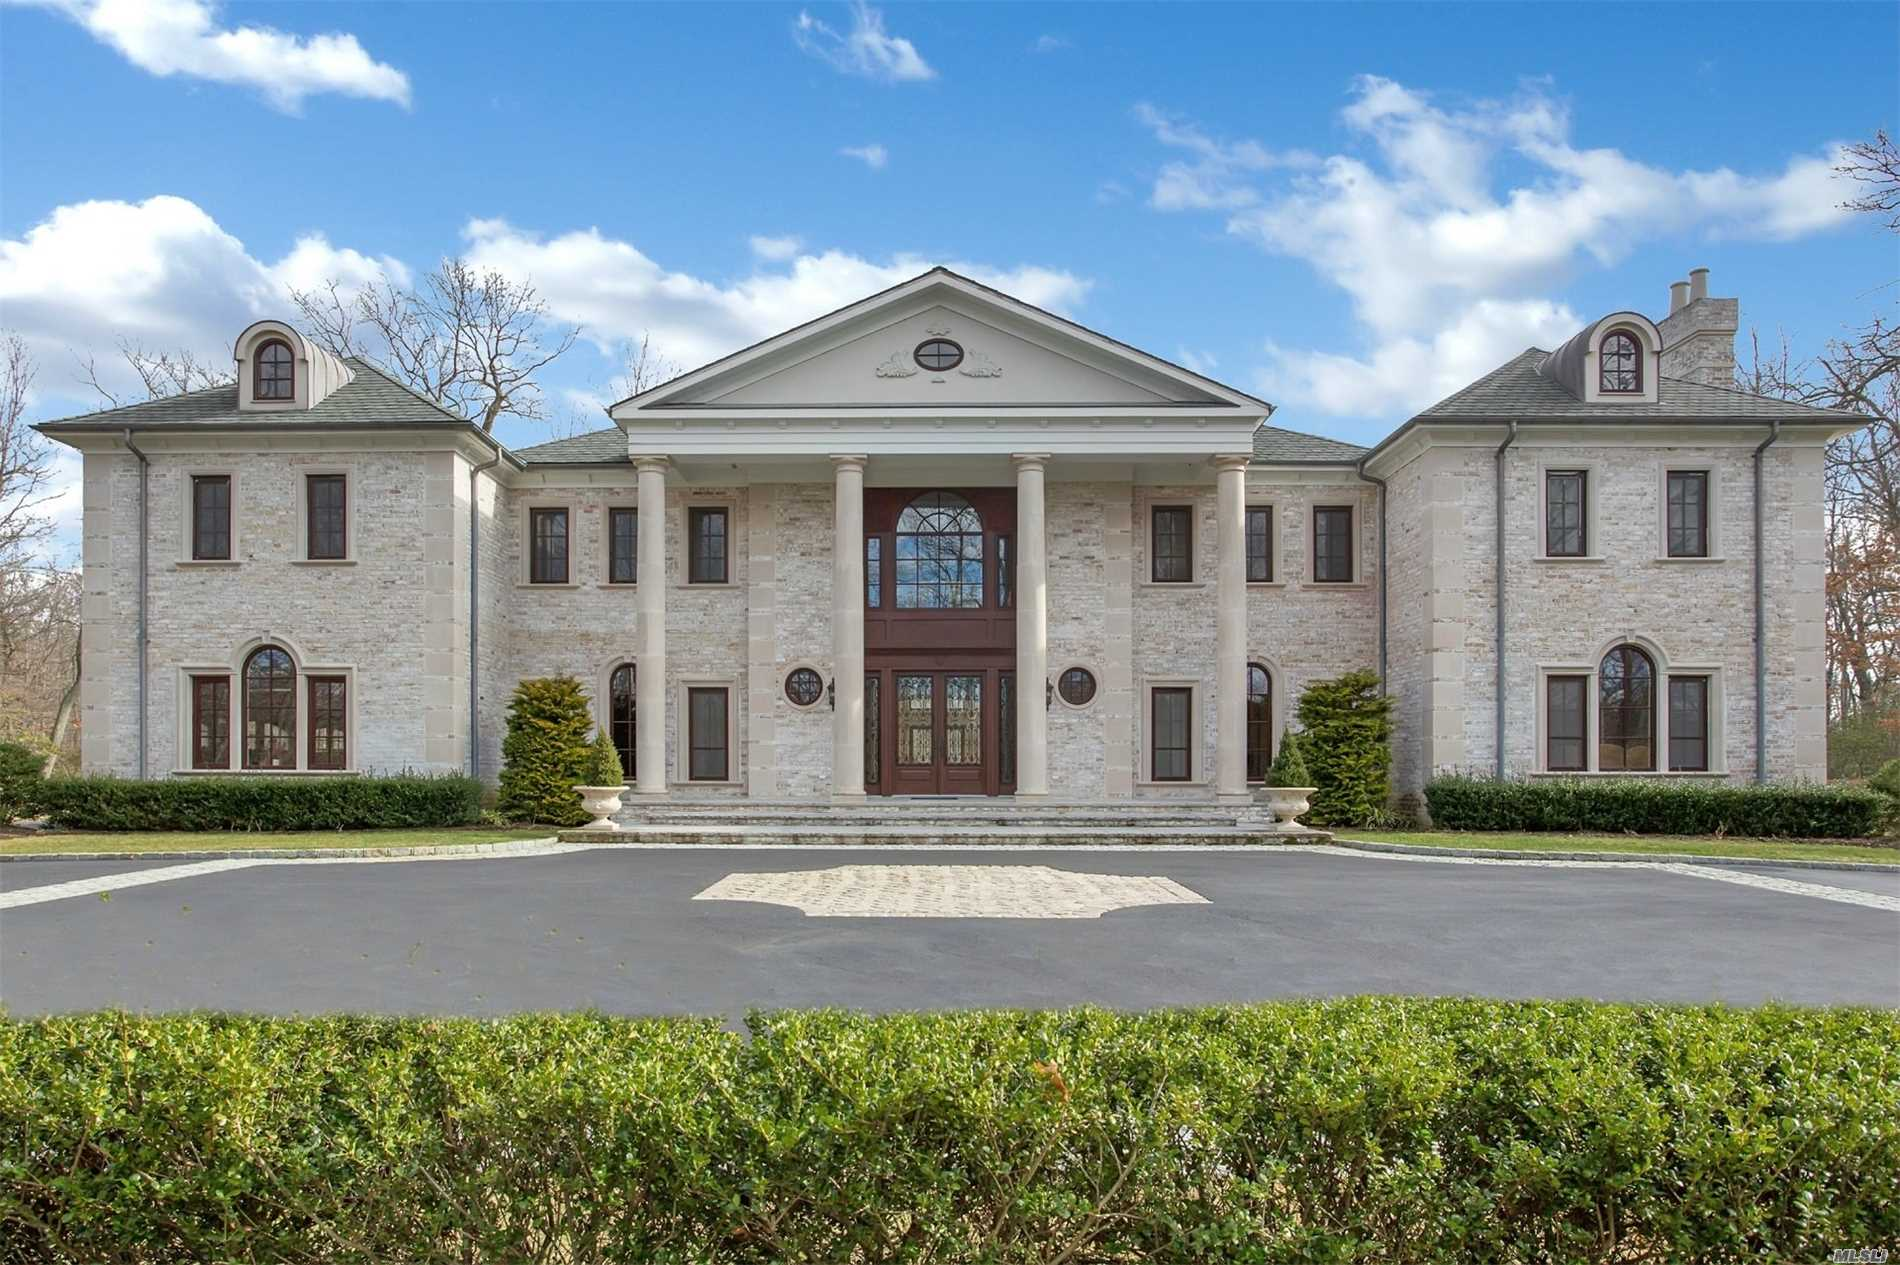 Built In 2011 And Designed By Gary Gallagher, Magnificent 9000 Sq Ft Grand Masterpiece. 5.65 Acres At The End Of A Picturesque Cul De Sac. This Luxurious Estate Features 6 Br's 5.5 Baths, 11 Foot Ceilings , Two Story Entrance Hall With 2 Sweeping Bridle Staircases, Radiant Heated Floors, Custom Molding And Millwork. Home Owner Is Very Motivated To Sell. 48Hrs Notice